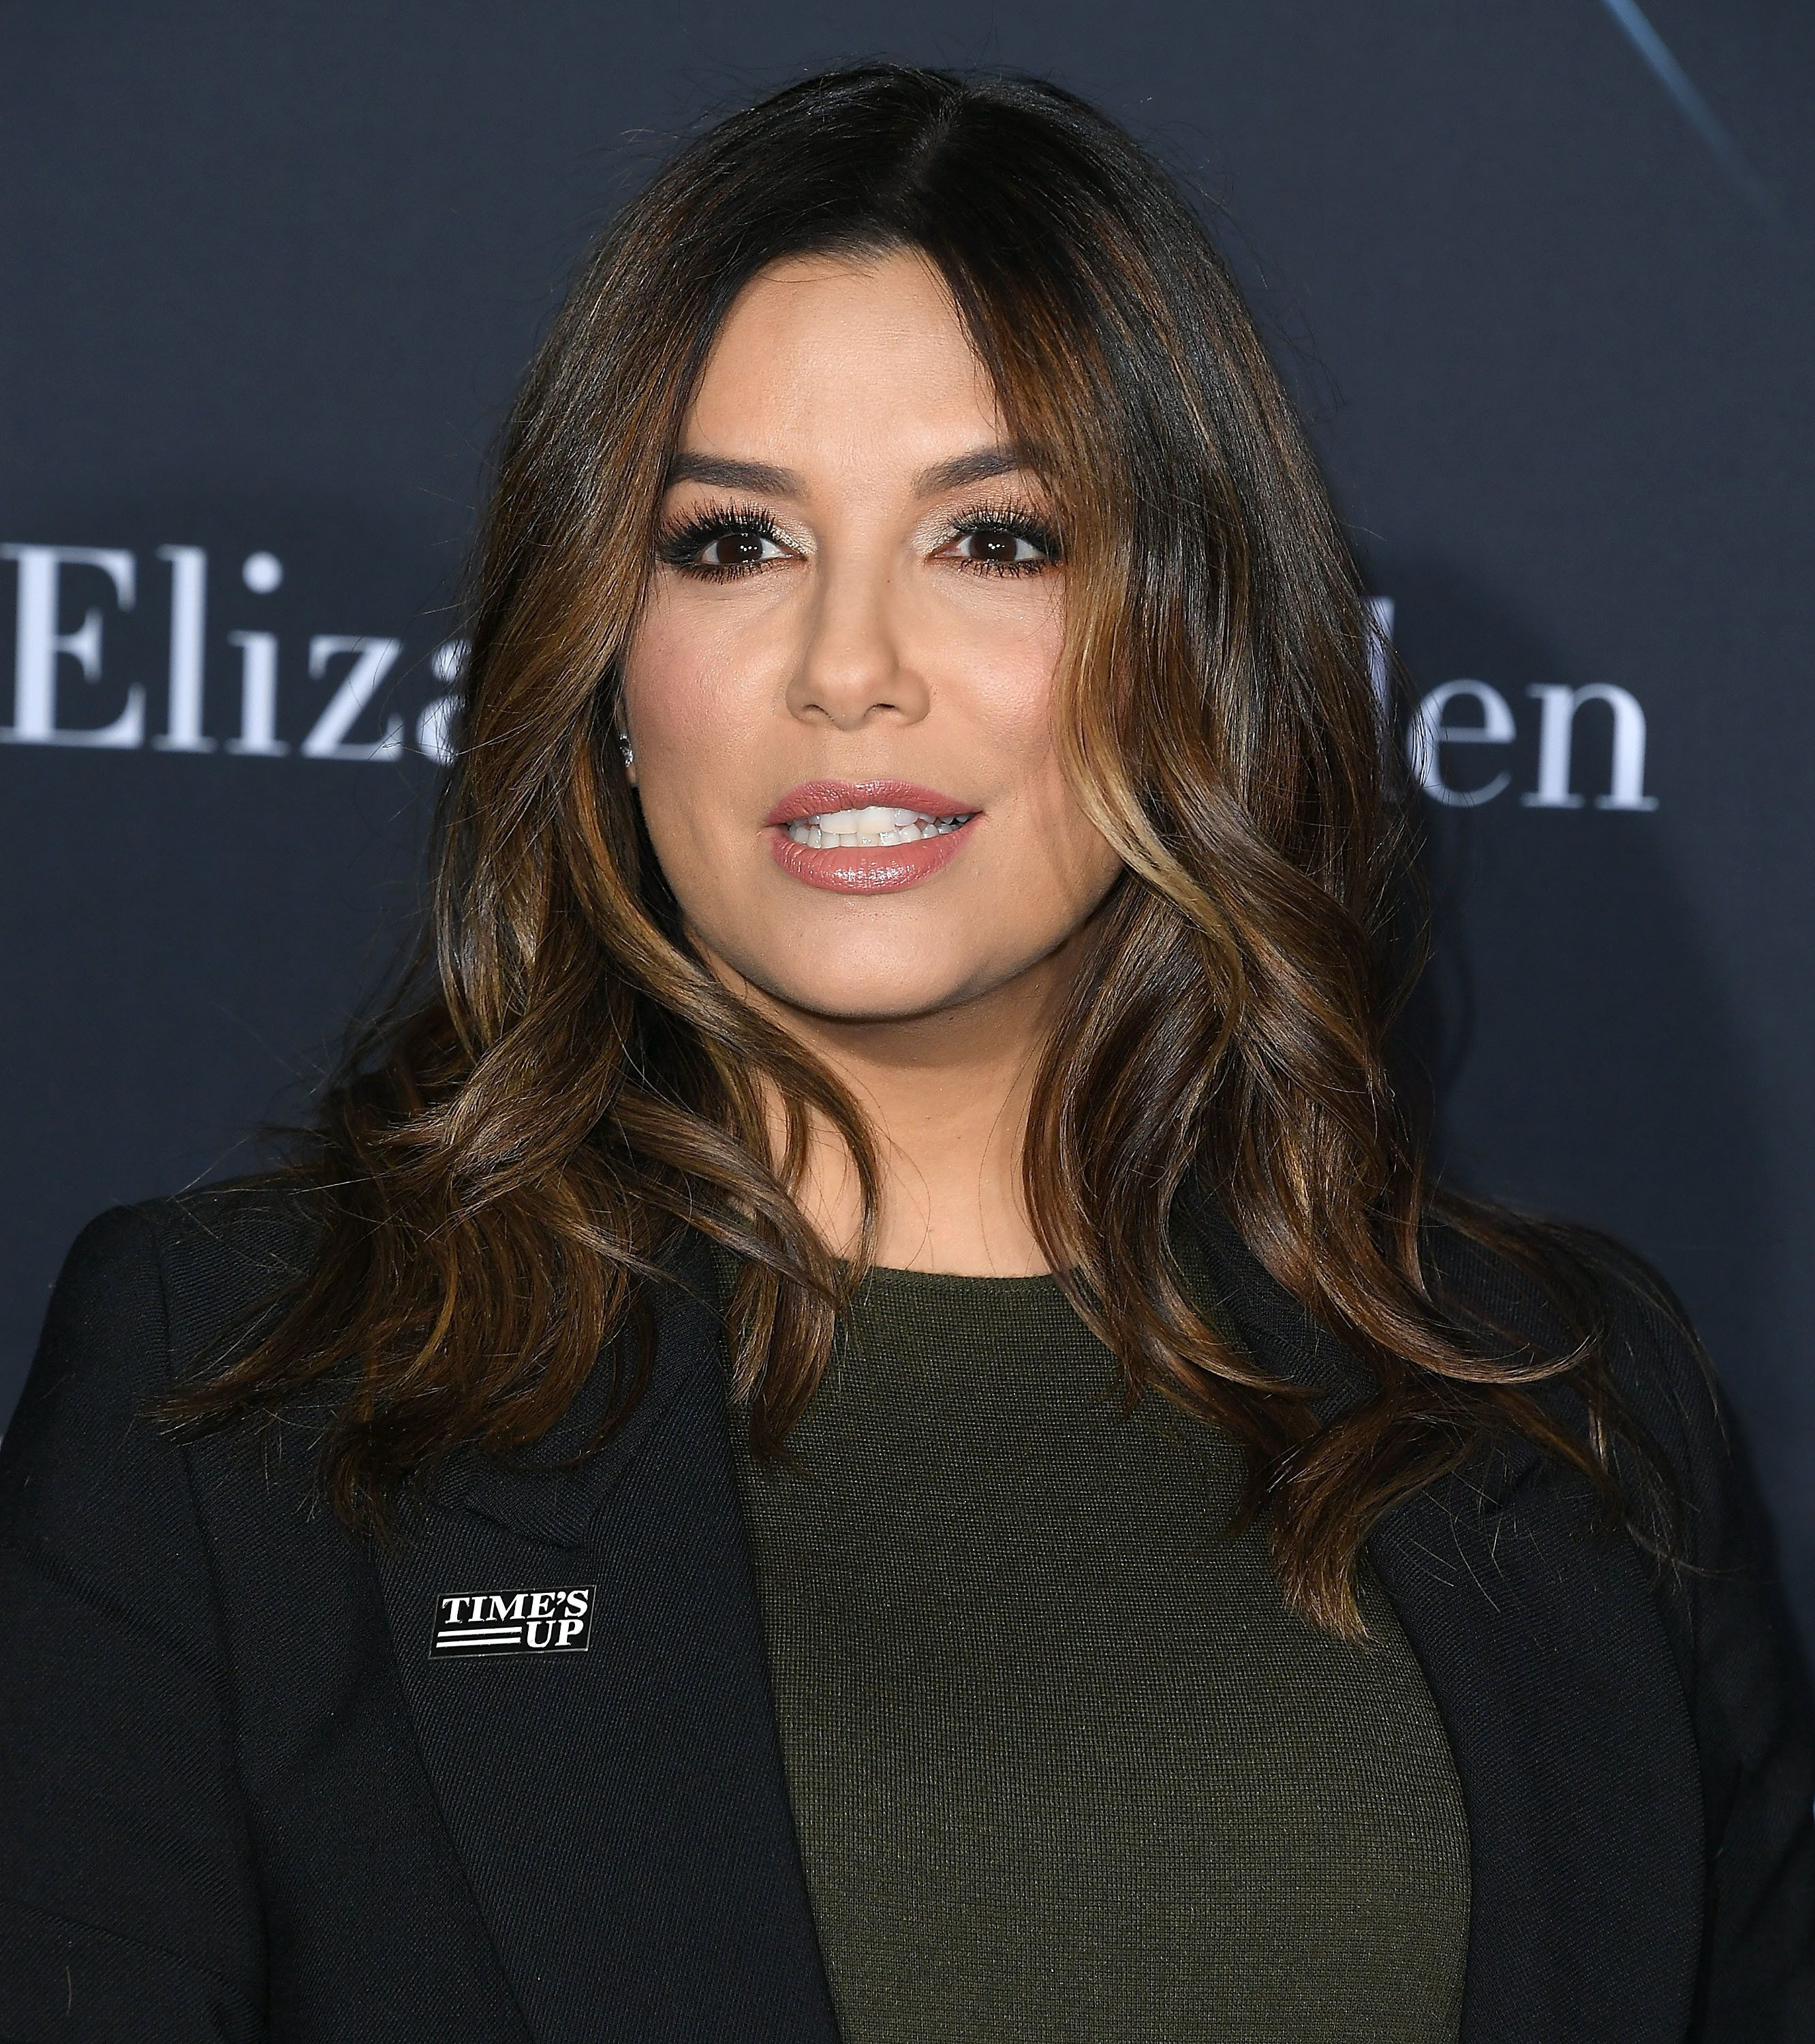 Eva Longoria Throws A Whole Heap Of Shade In 'Desperate Housewives' Co-Star's